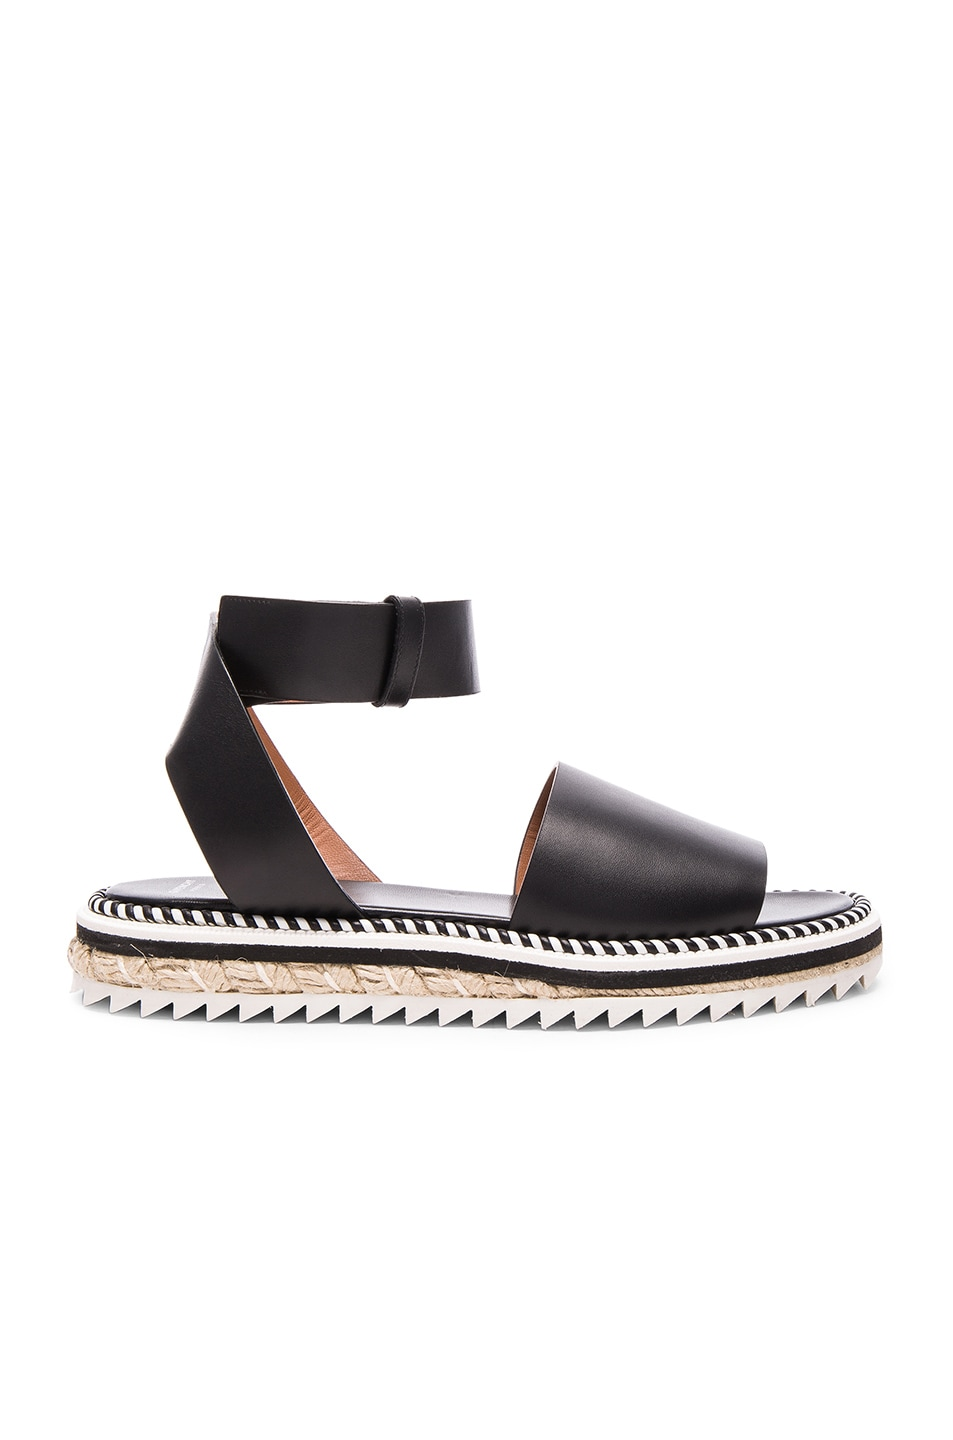 Image 1 of Givenchy Leather Rodha Flat Sandals in Black